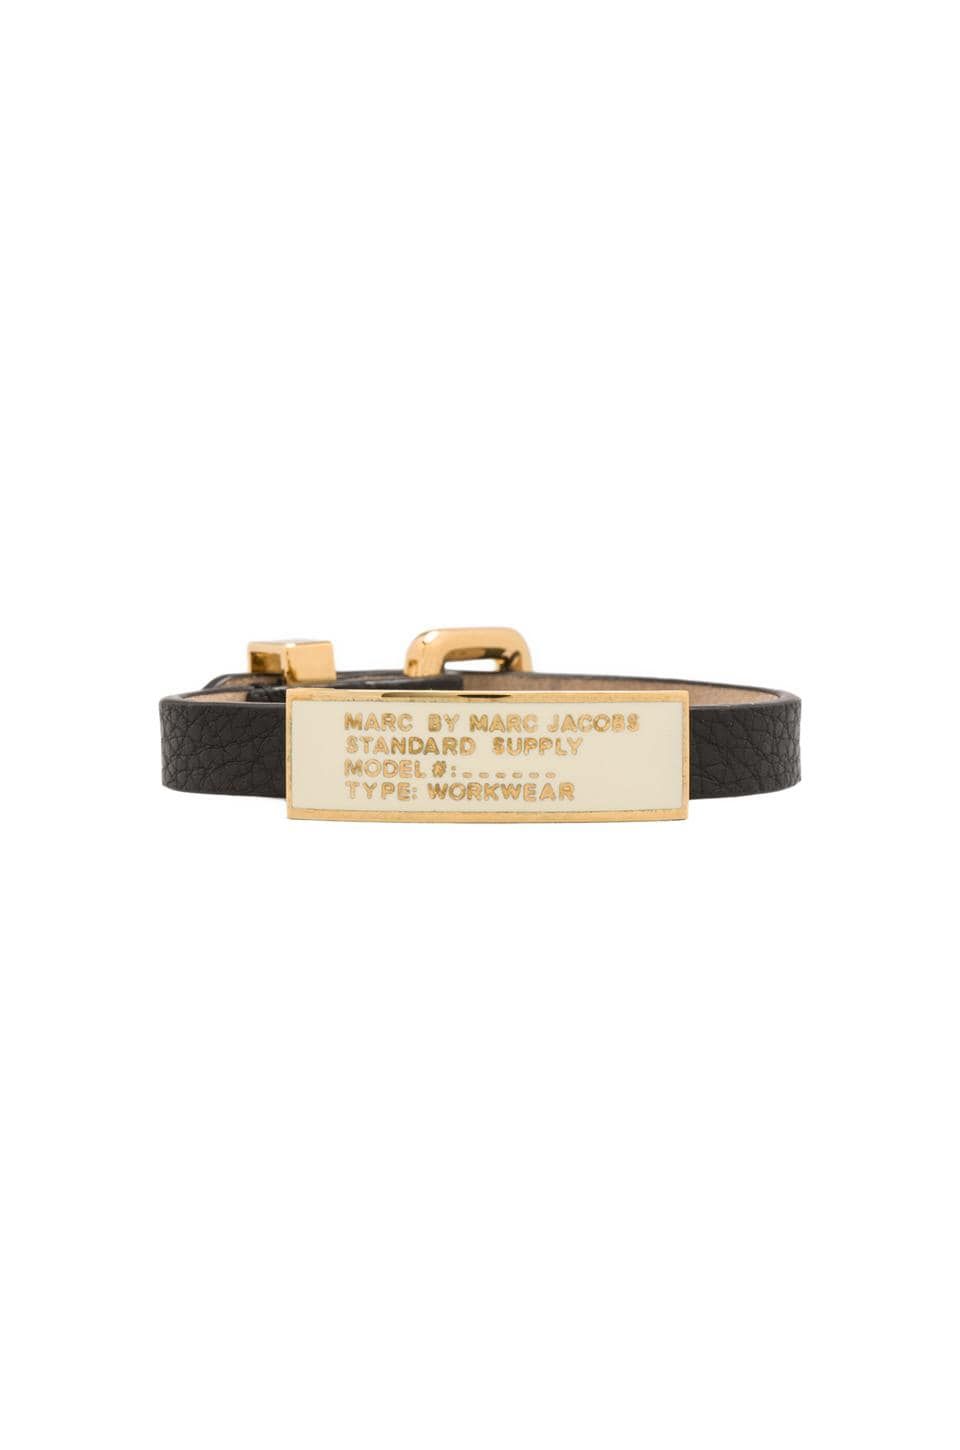 Marc by Marc Jacobs Enamel Standard Supply ID Bracelet in Black/Cream (Oro)